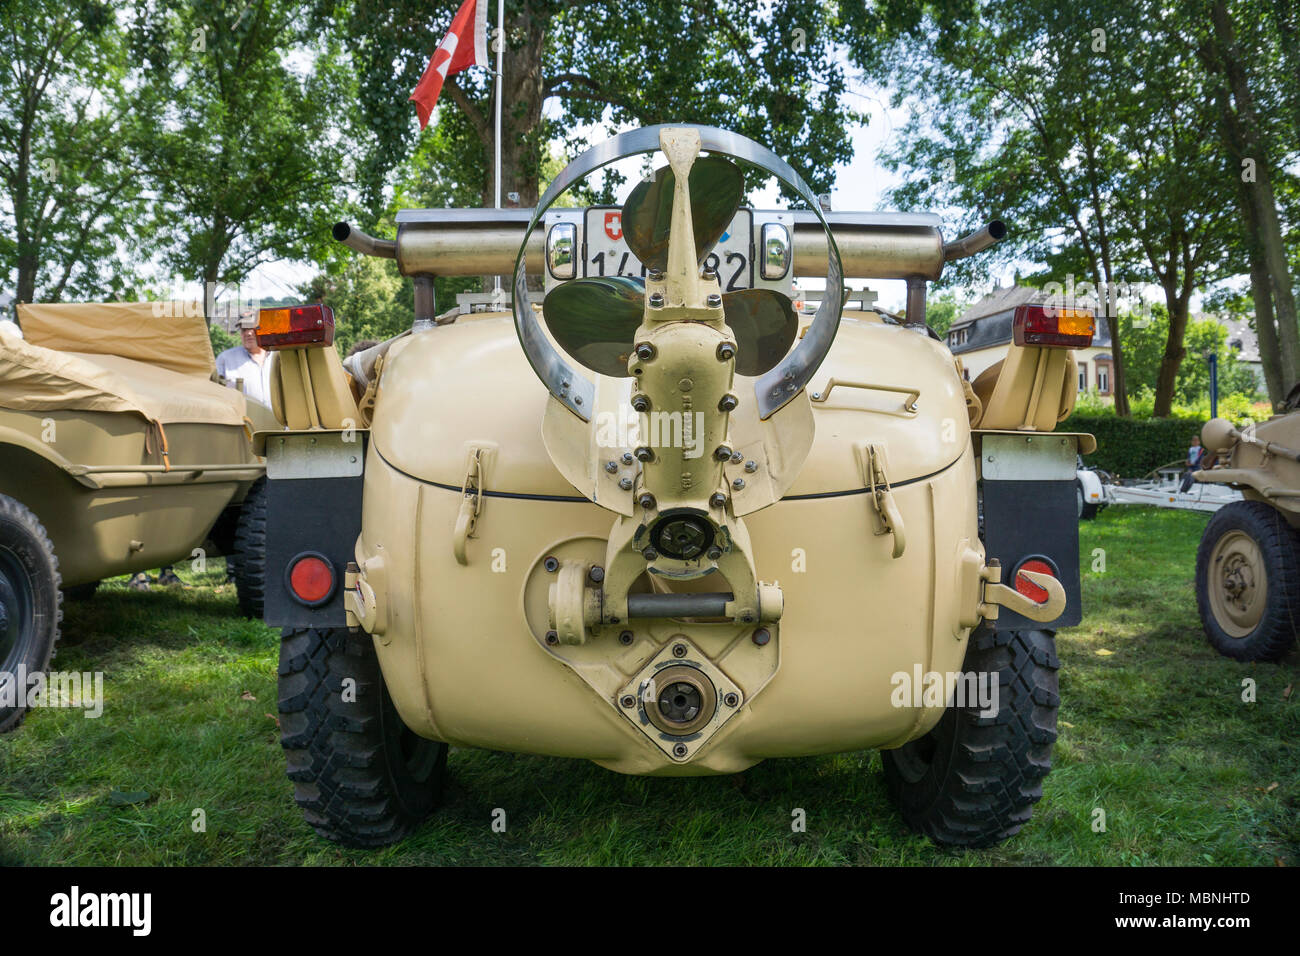 Backside of a VW Typ 166, a german amphibious vehicle built at the 2nd world war, exhibition at Moselle river, Rhineland-Palatinate, Germany - Stock Image